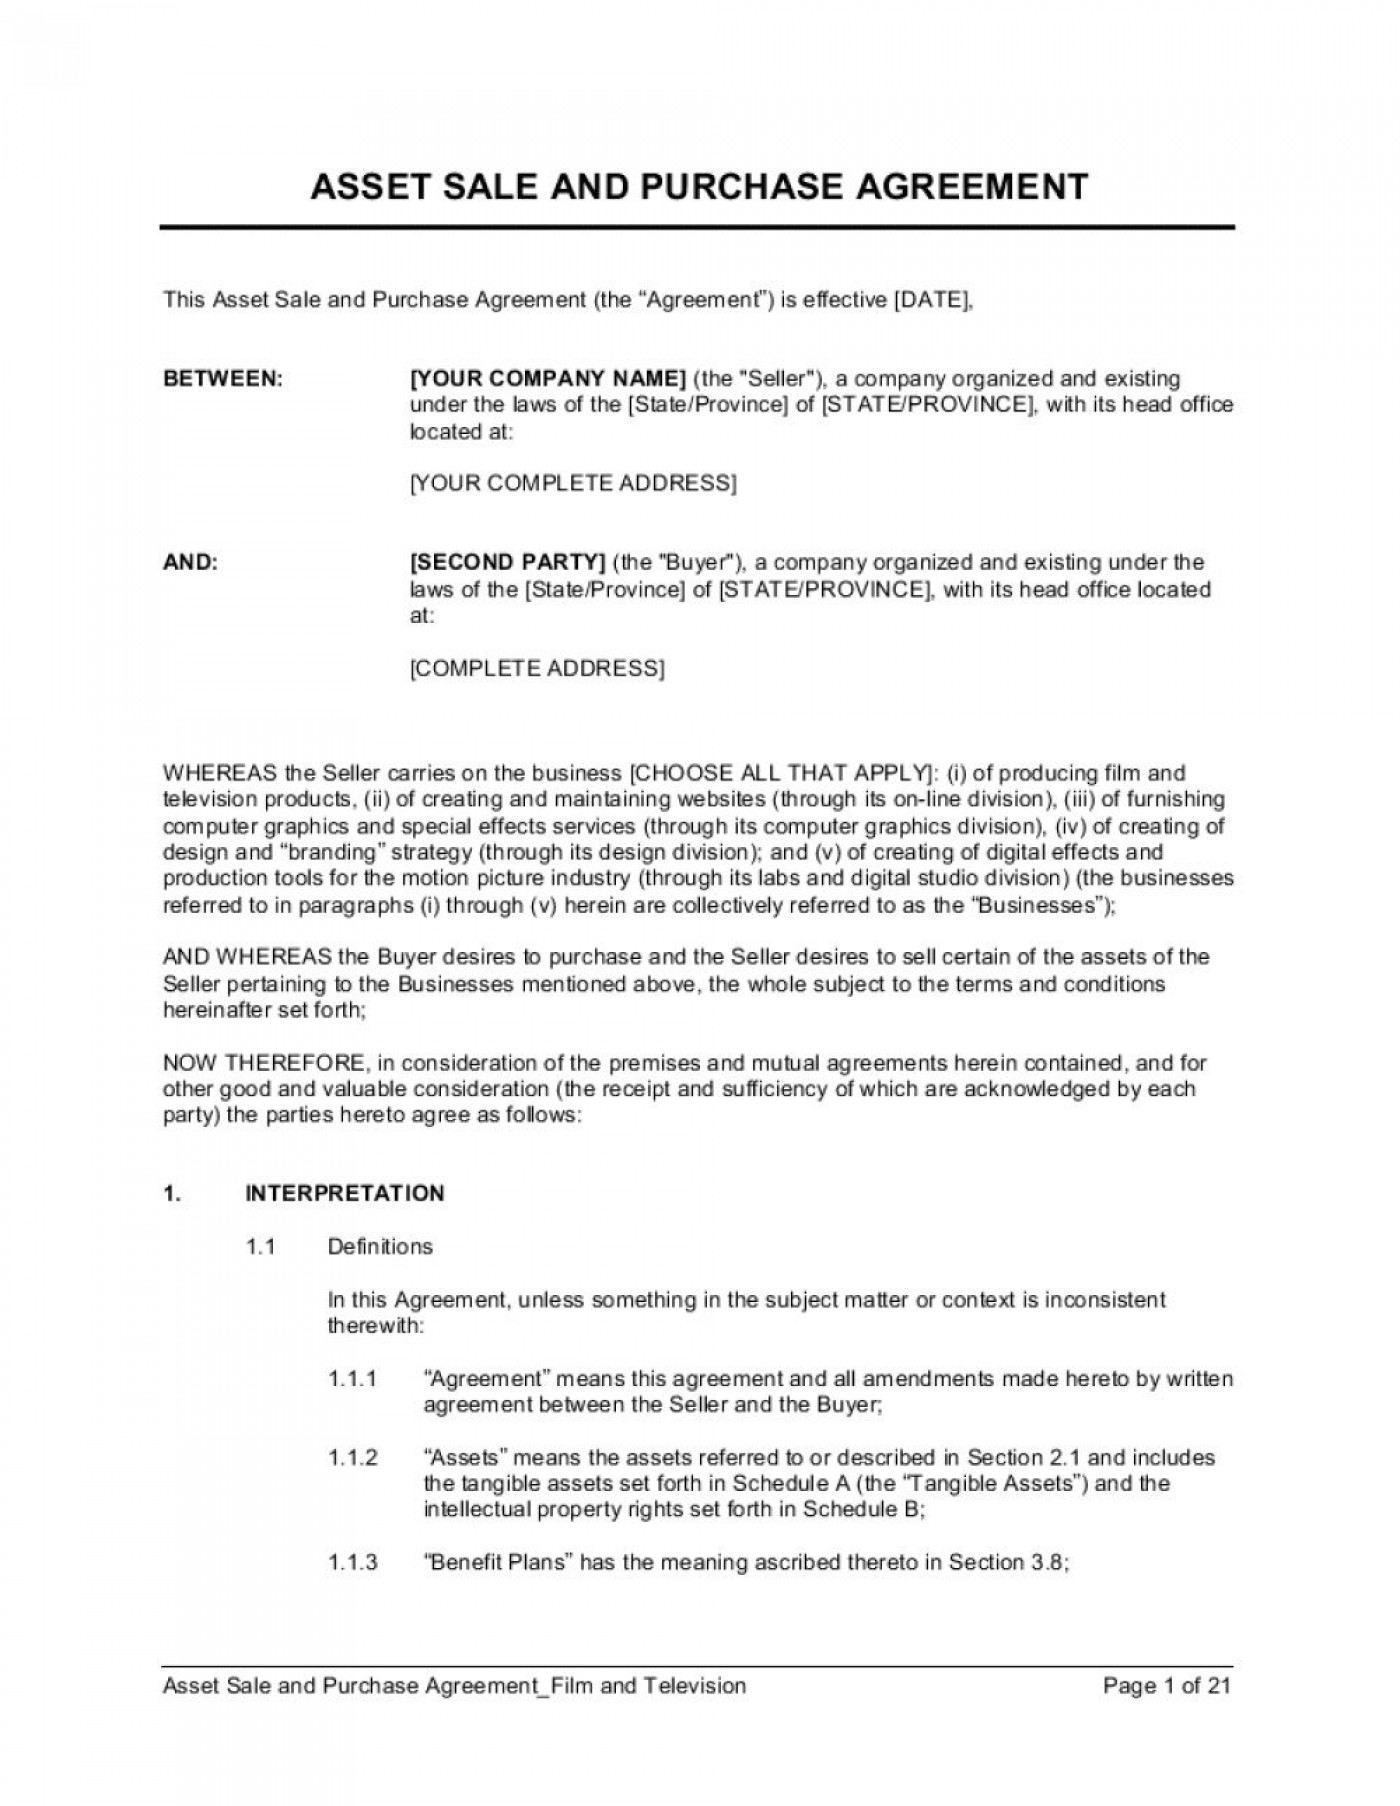 004 Remarkable Busines Sale Agreement Template Image  Western Australia Free Uk Download South Africa1400